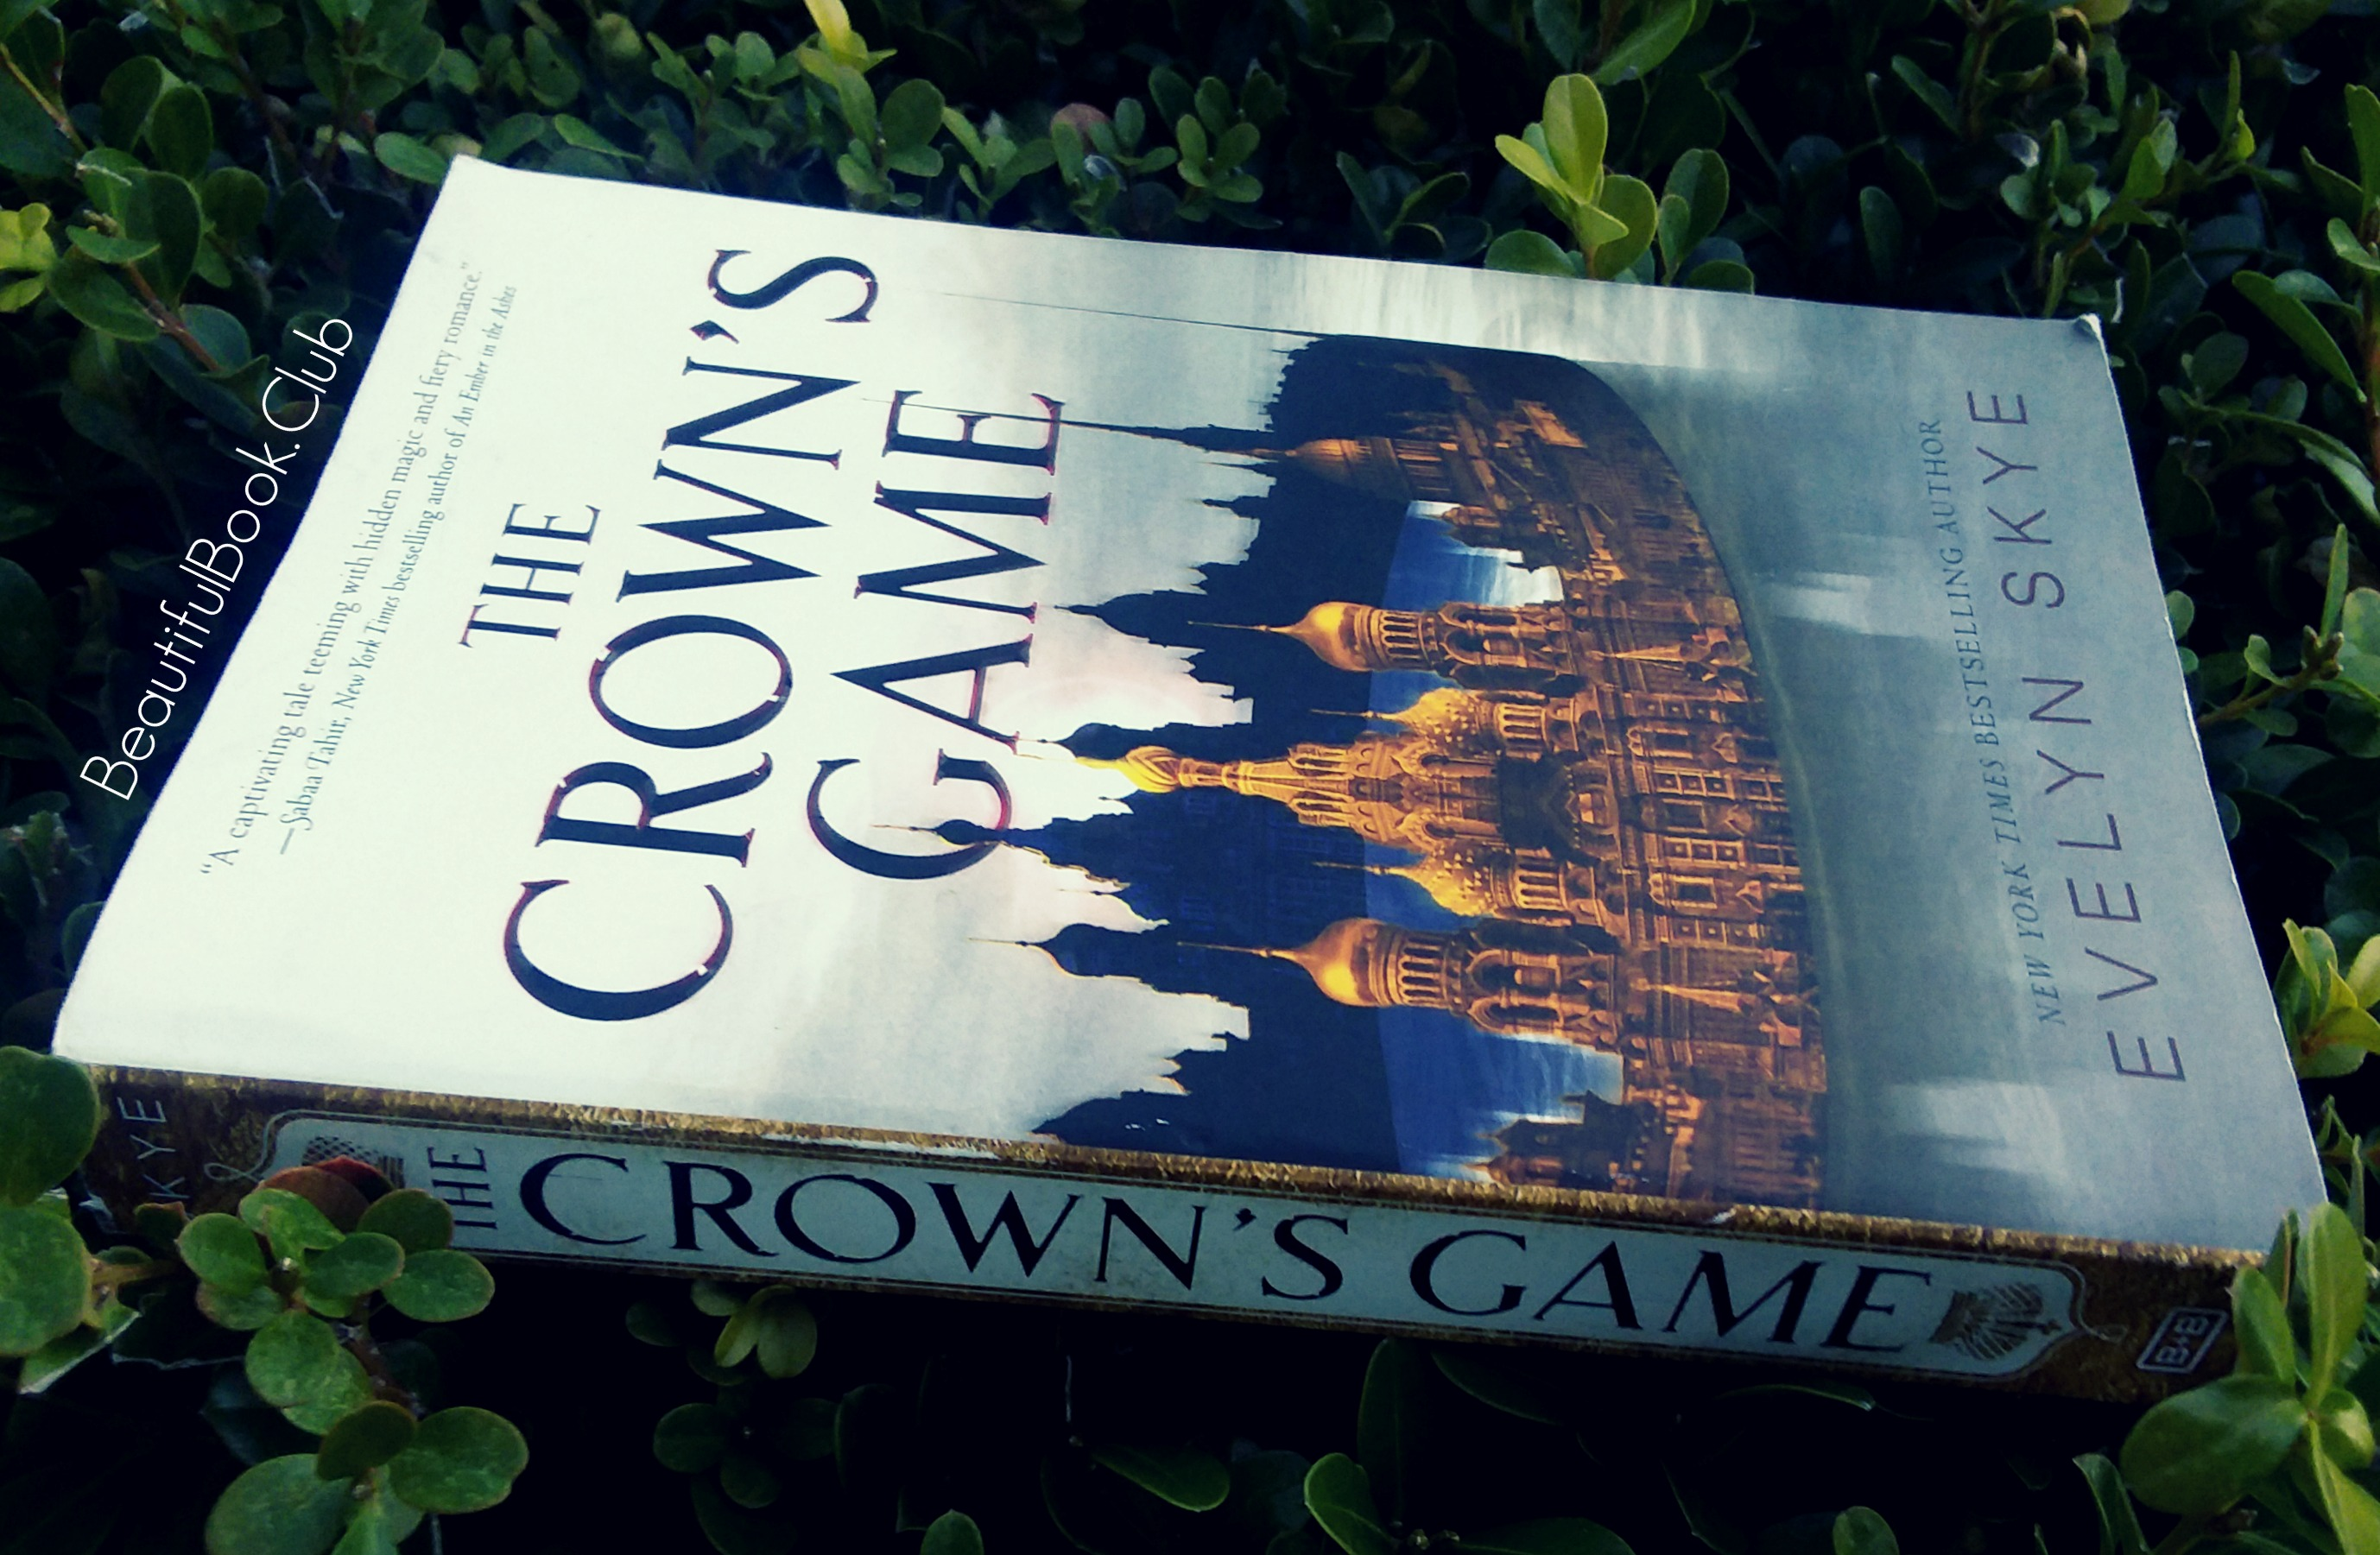 The Crown's Game by Evelyn Skye front cover and spine